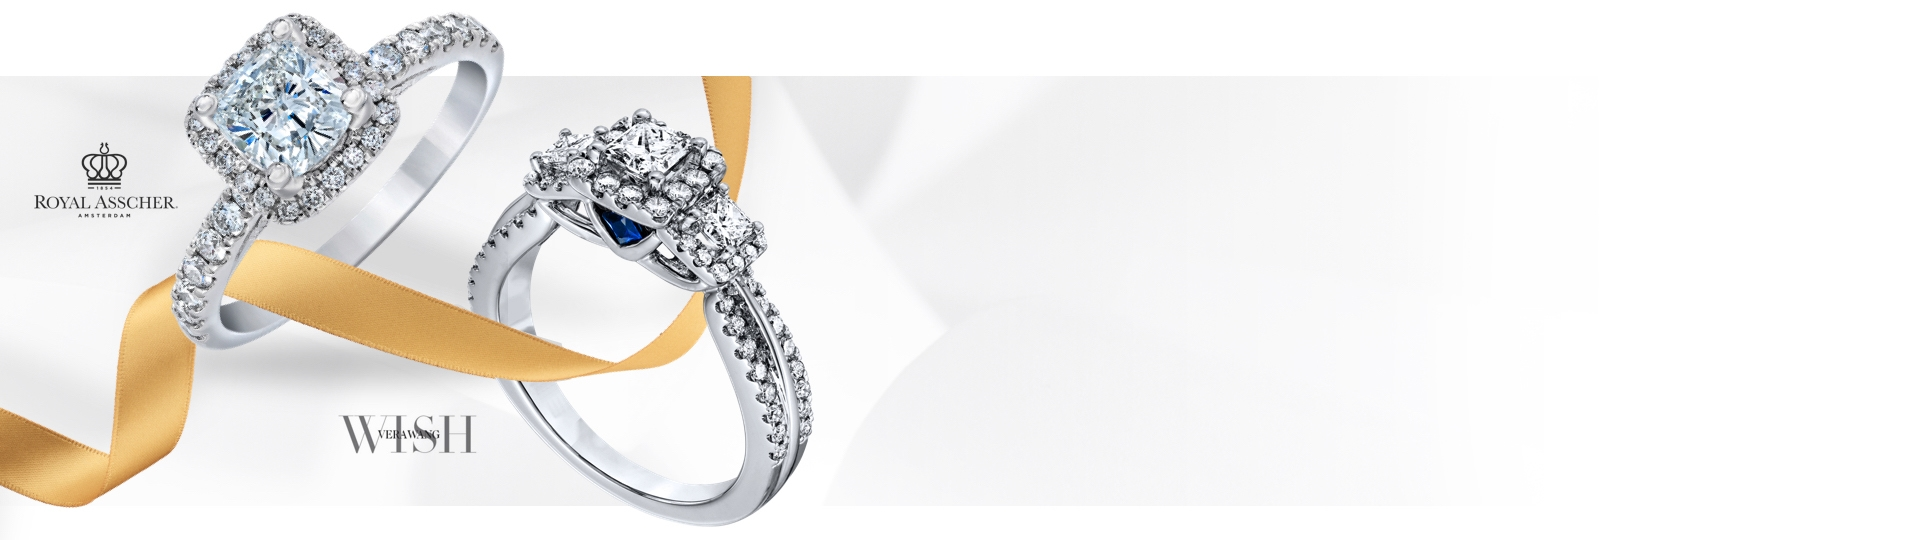 A Royal Asscher engagement ring and a Vera Wang Wish engagement ring on a gray background with a gold ribbon. Shop engagement rings at Jared.